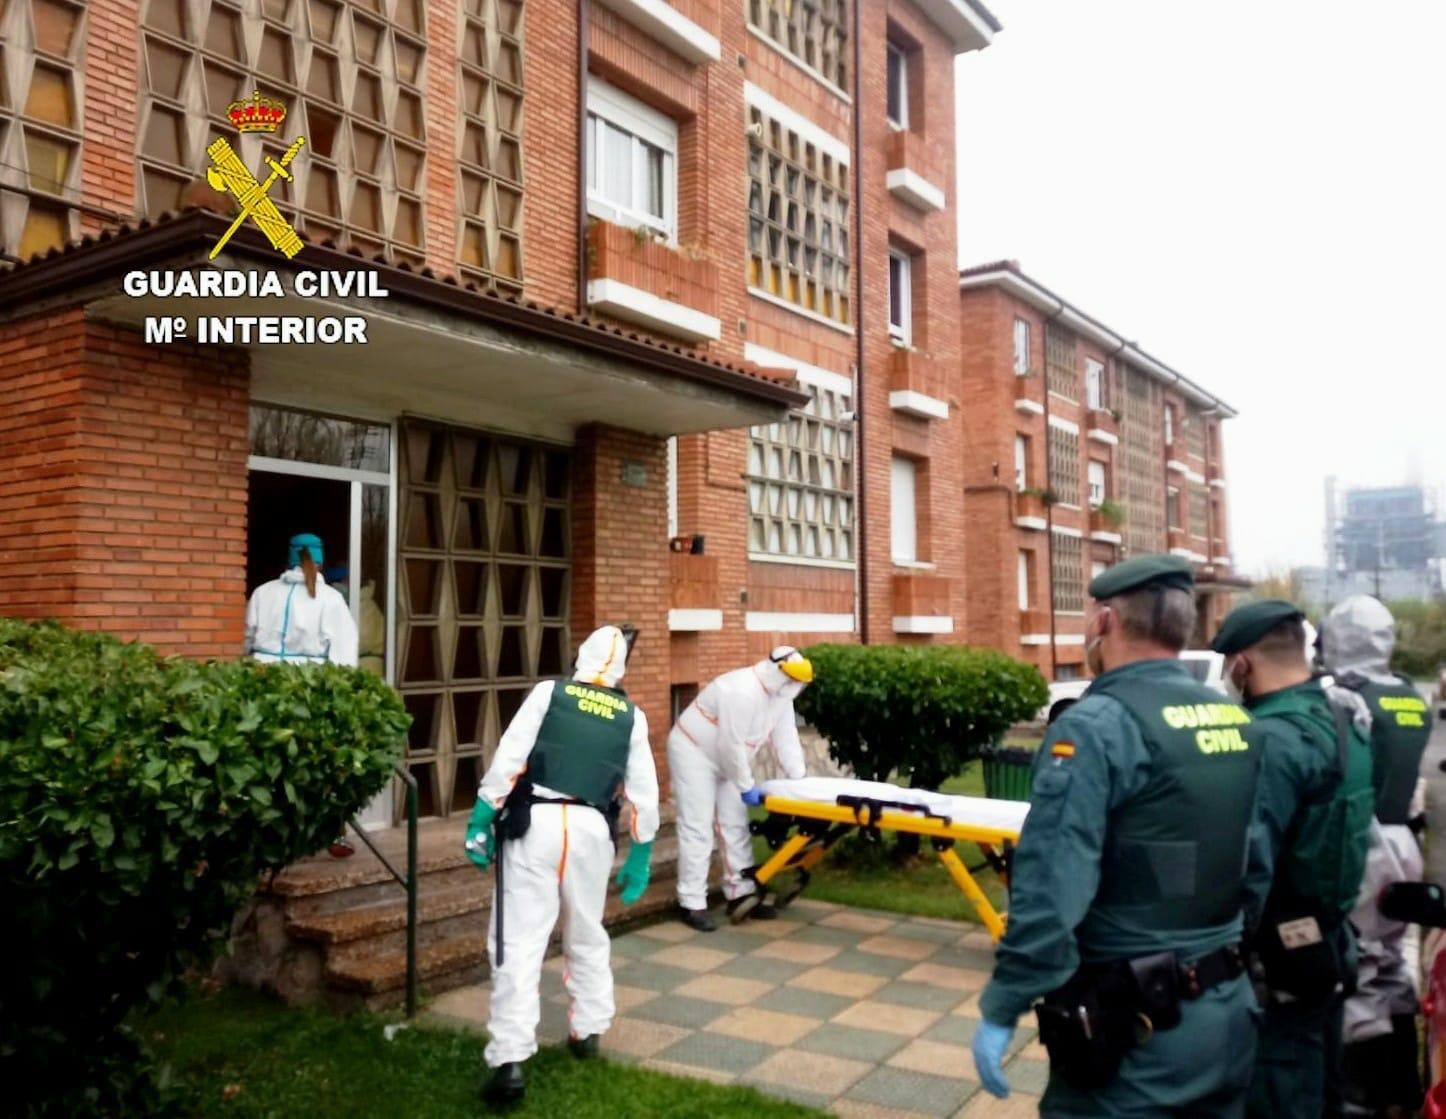 La Guardia Civil interviene para obligar a un positivo por covid a ingresar en el Hospital